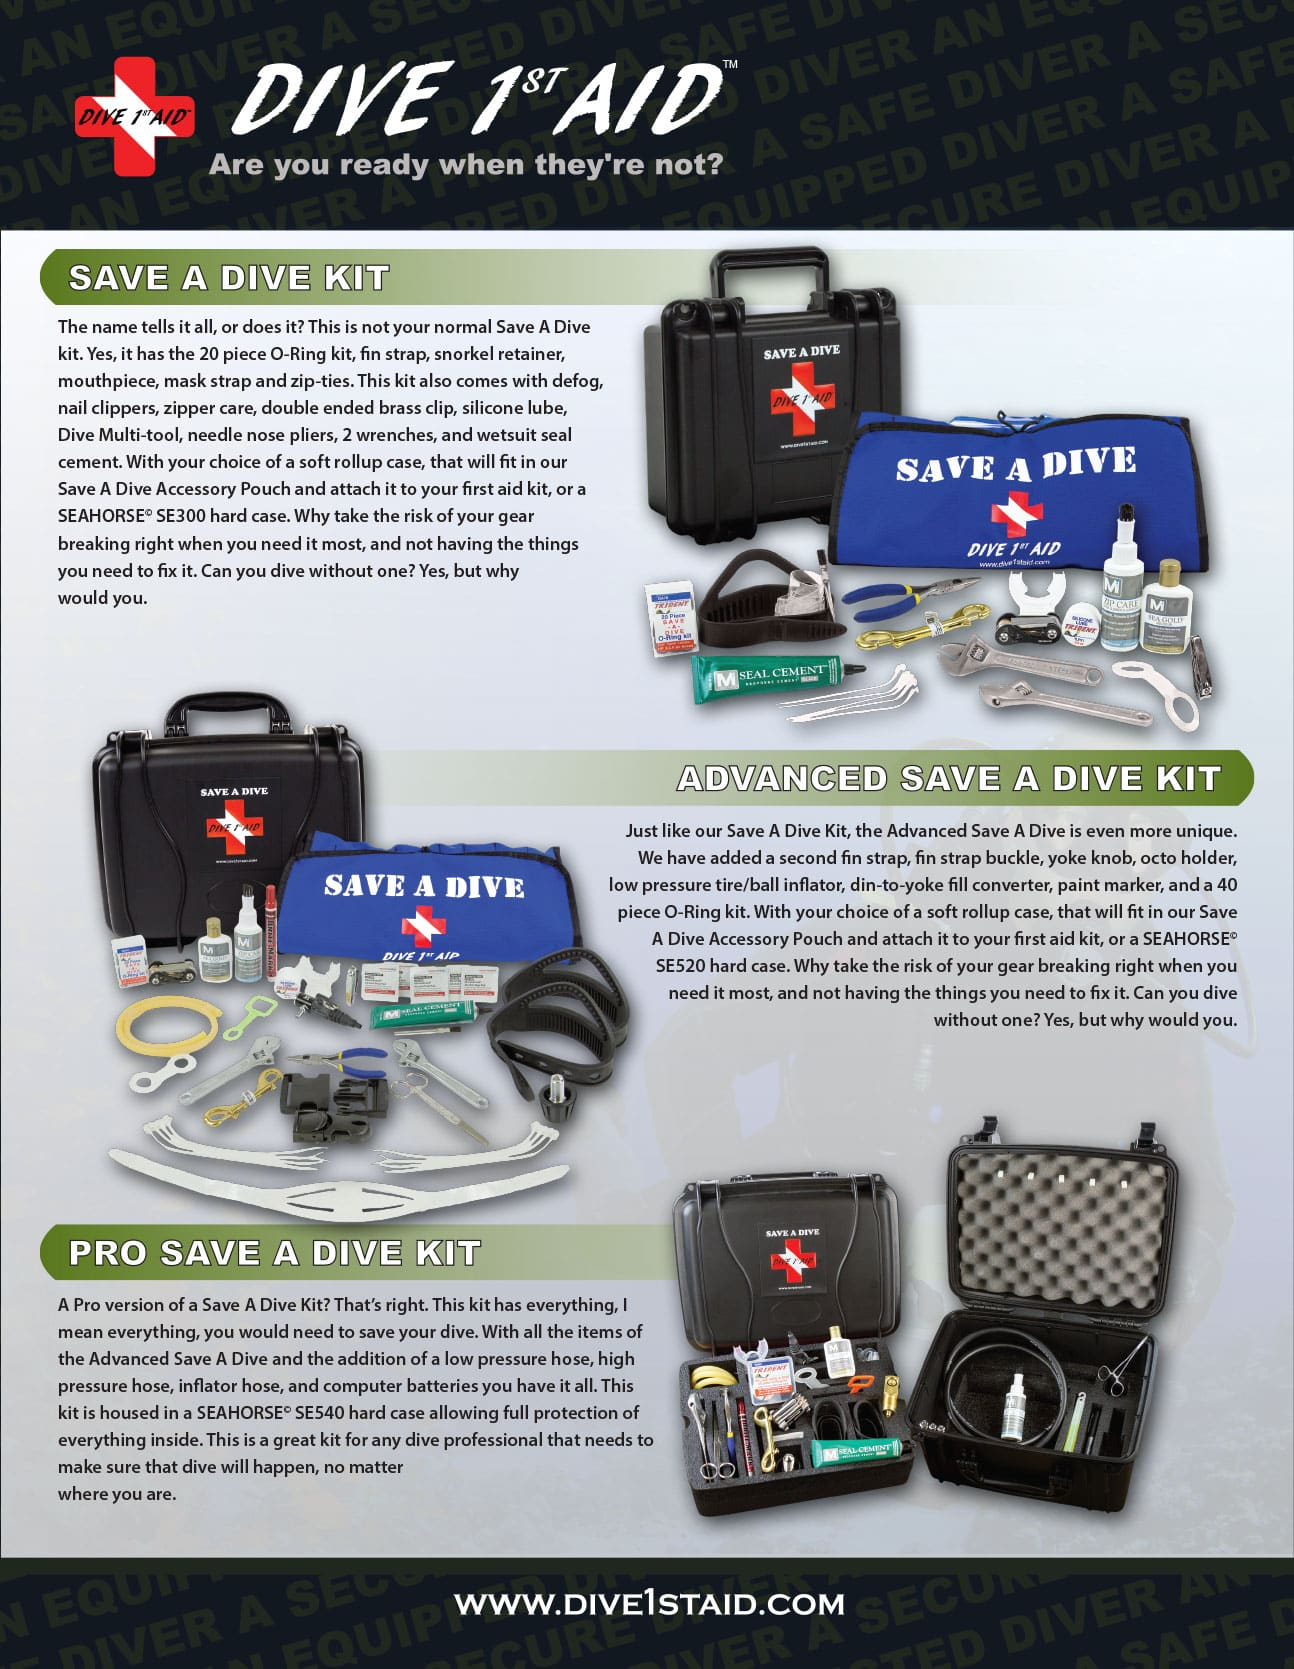 1st Aid kit for Professional Scuba Divers